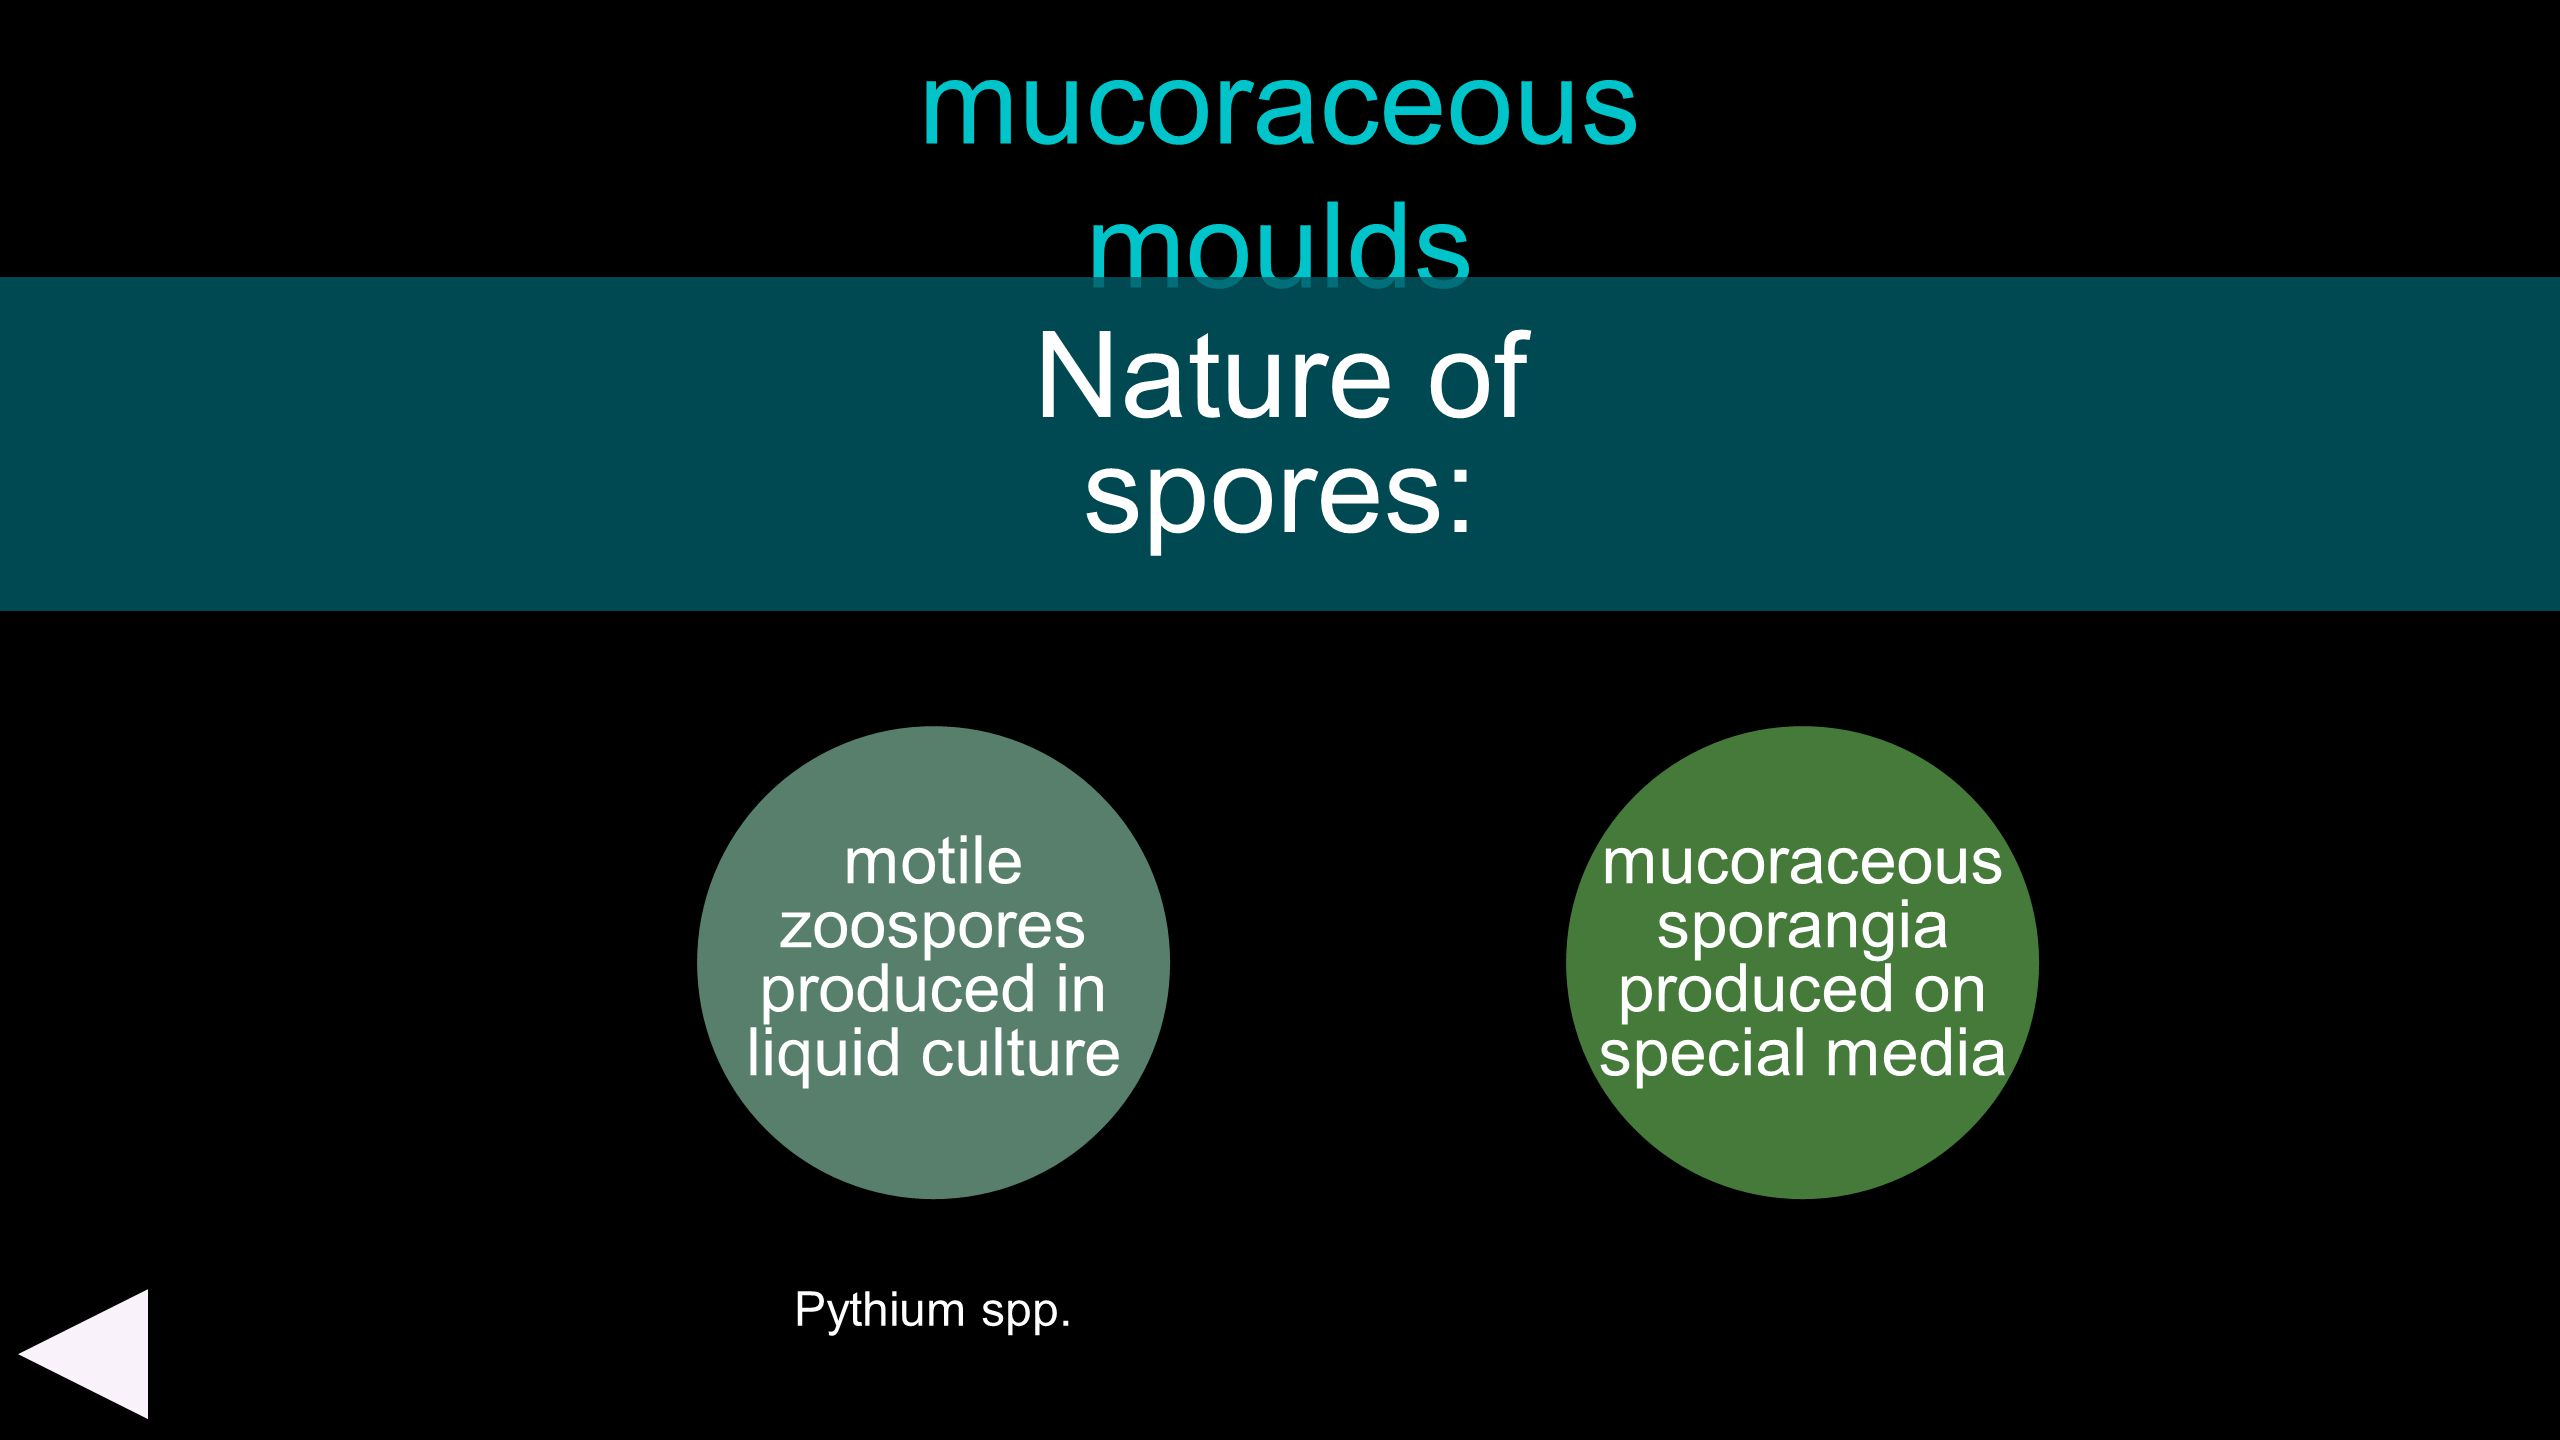 mucoraceous moulds Nature of spores: